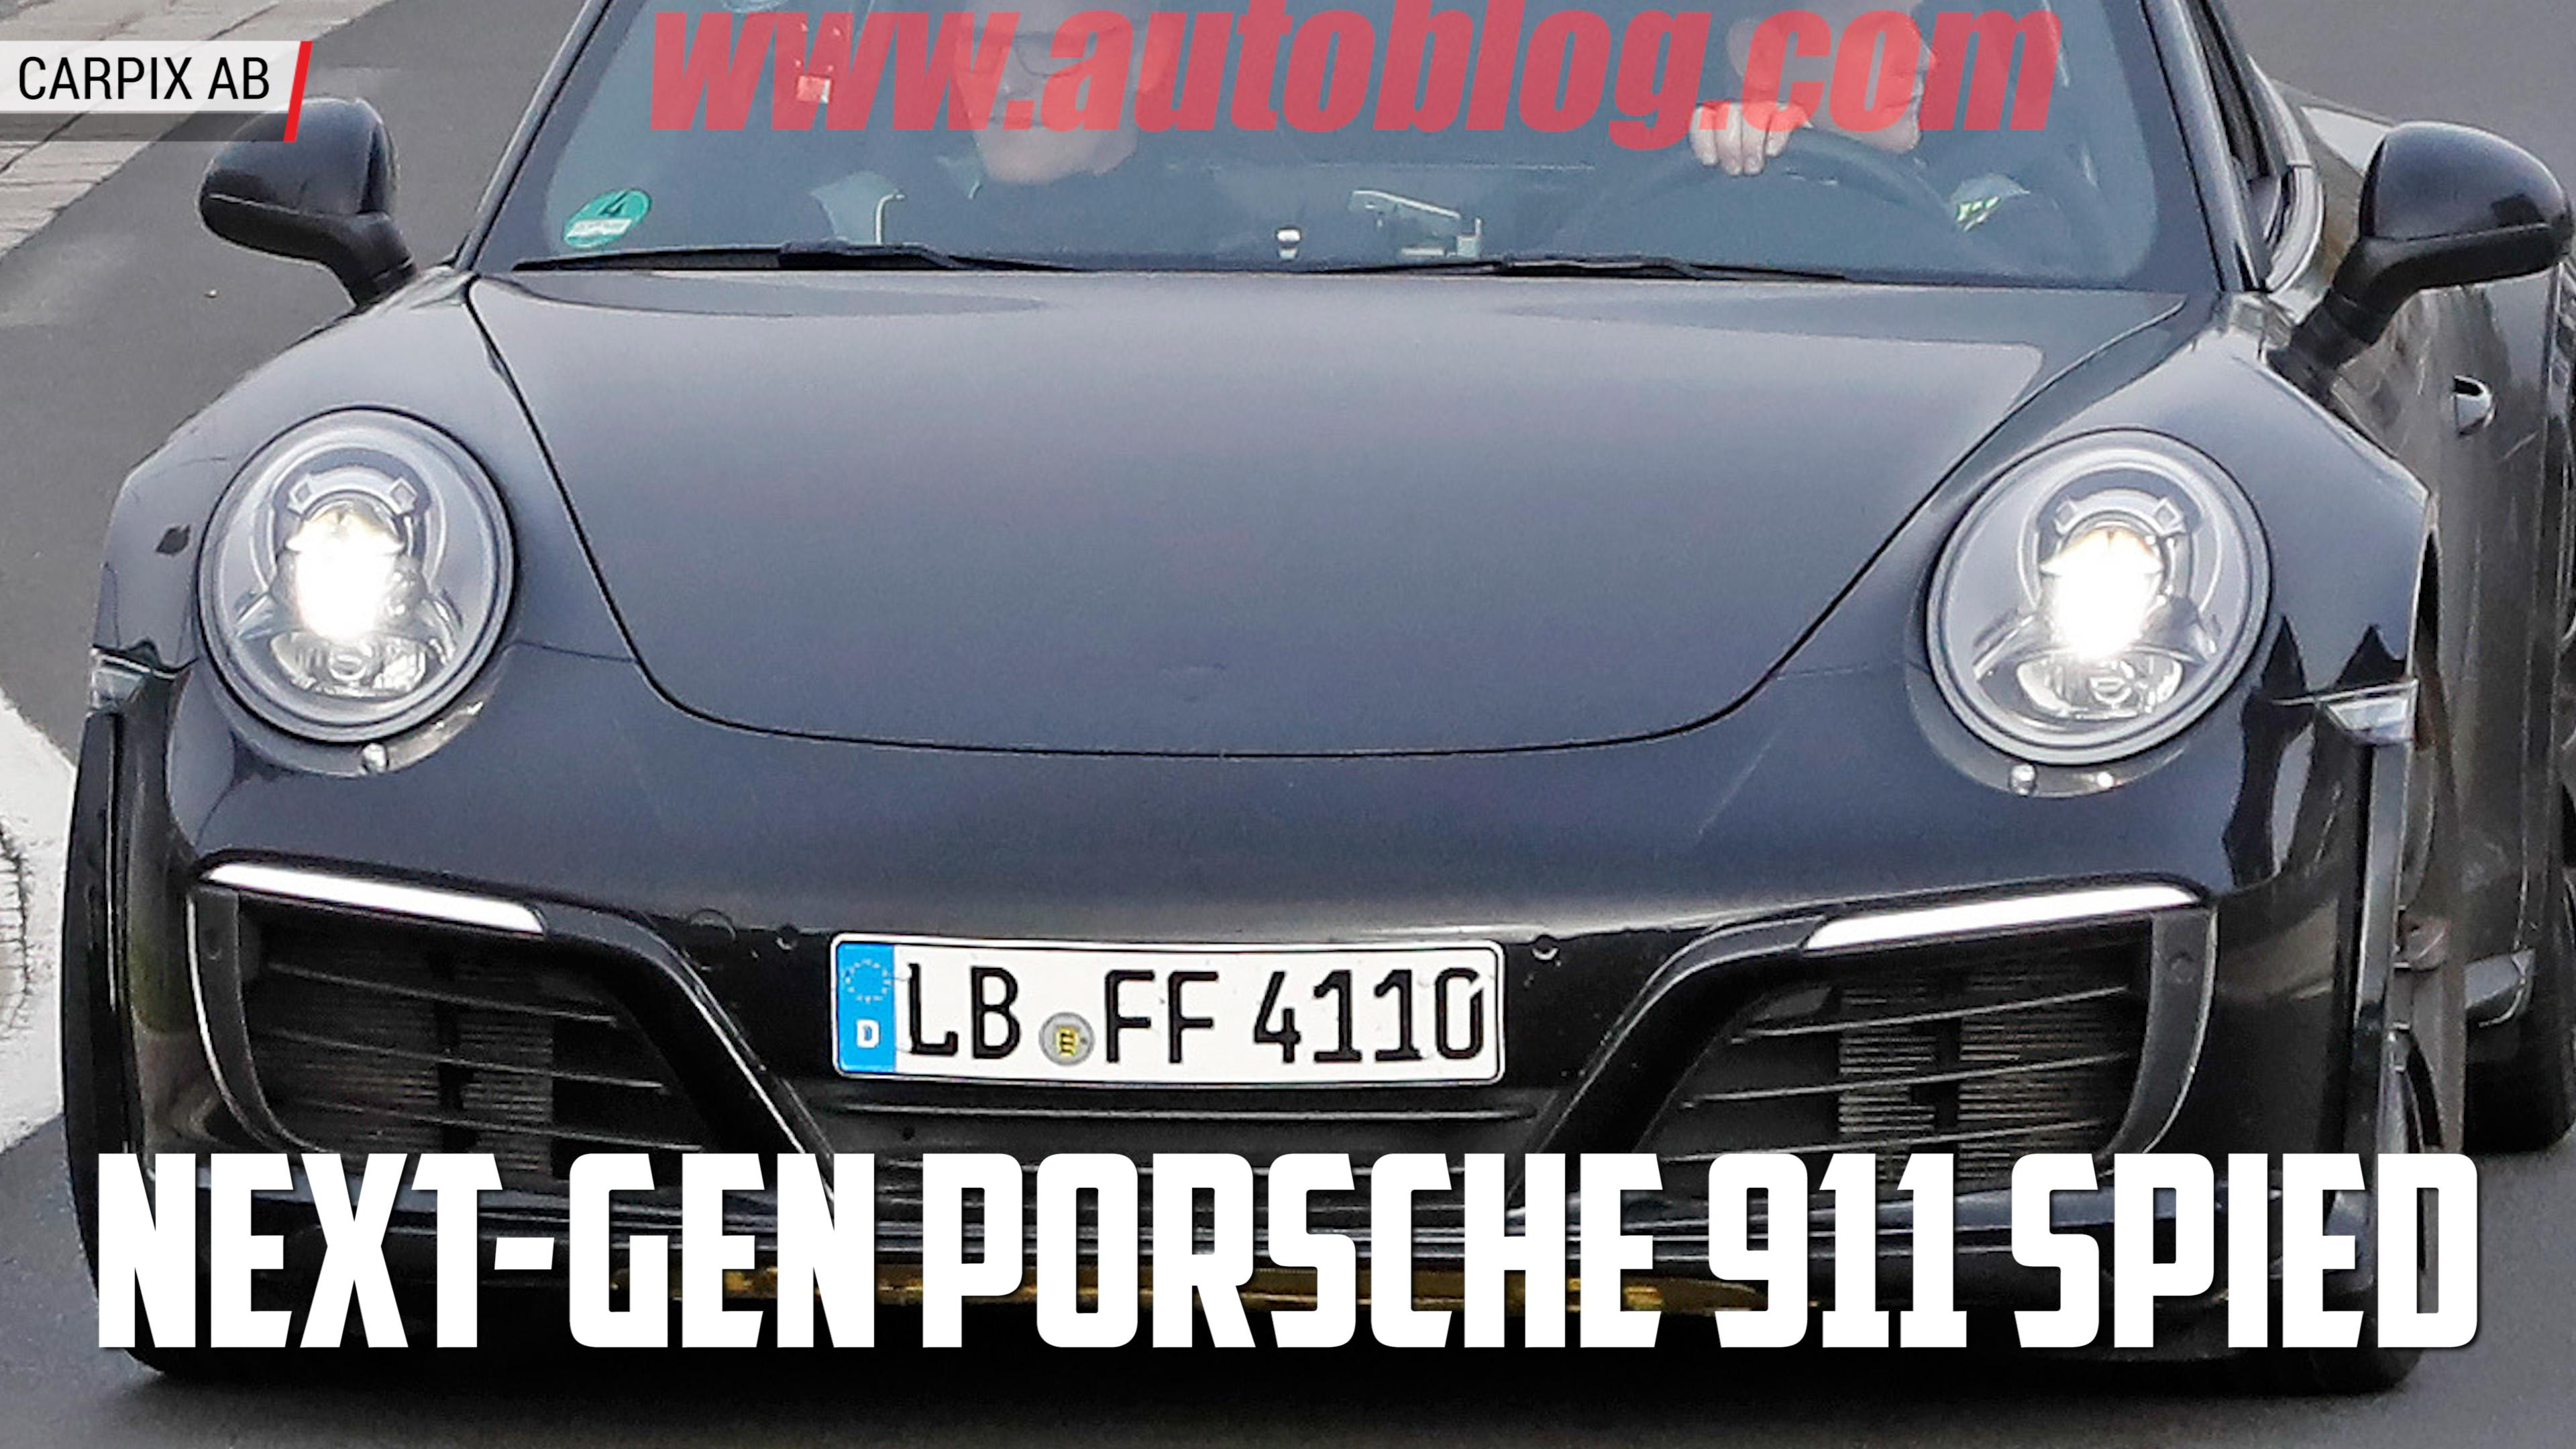 58236ba4c7480e44b98efcd0_o_U_v1 Breathtaking How Many Porsche 911 Gt2 Were Made Cars Trend